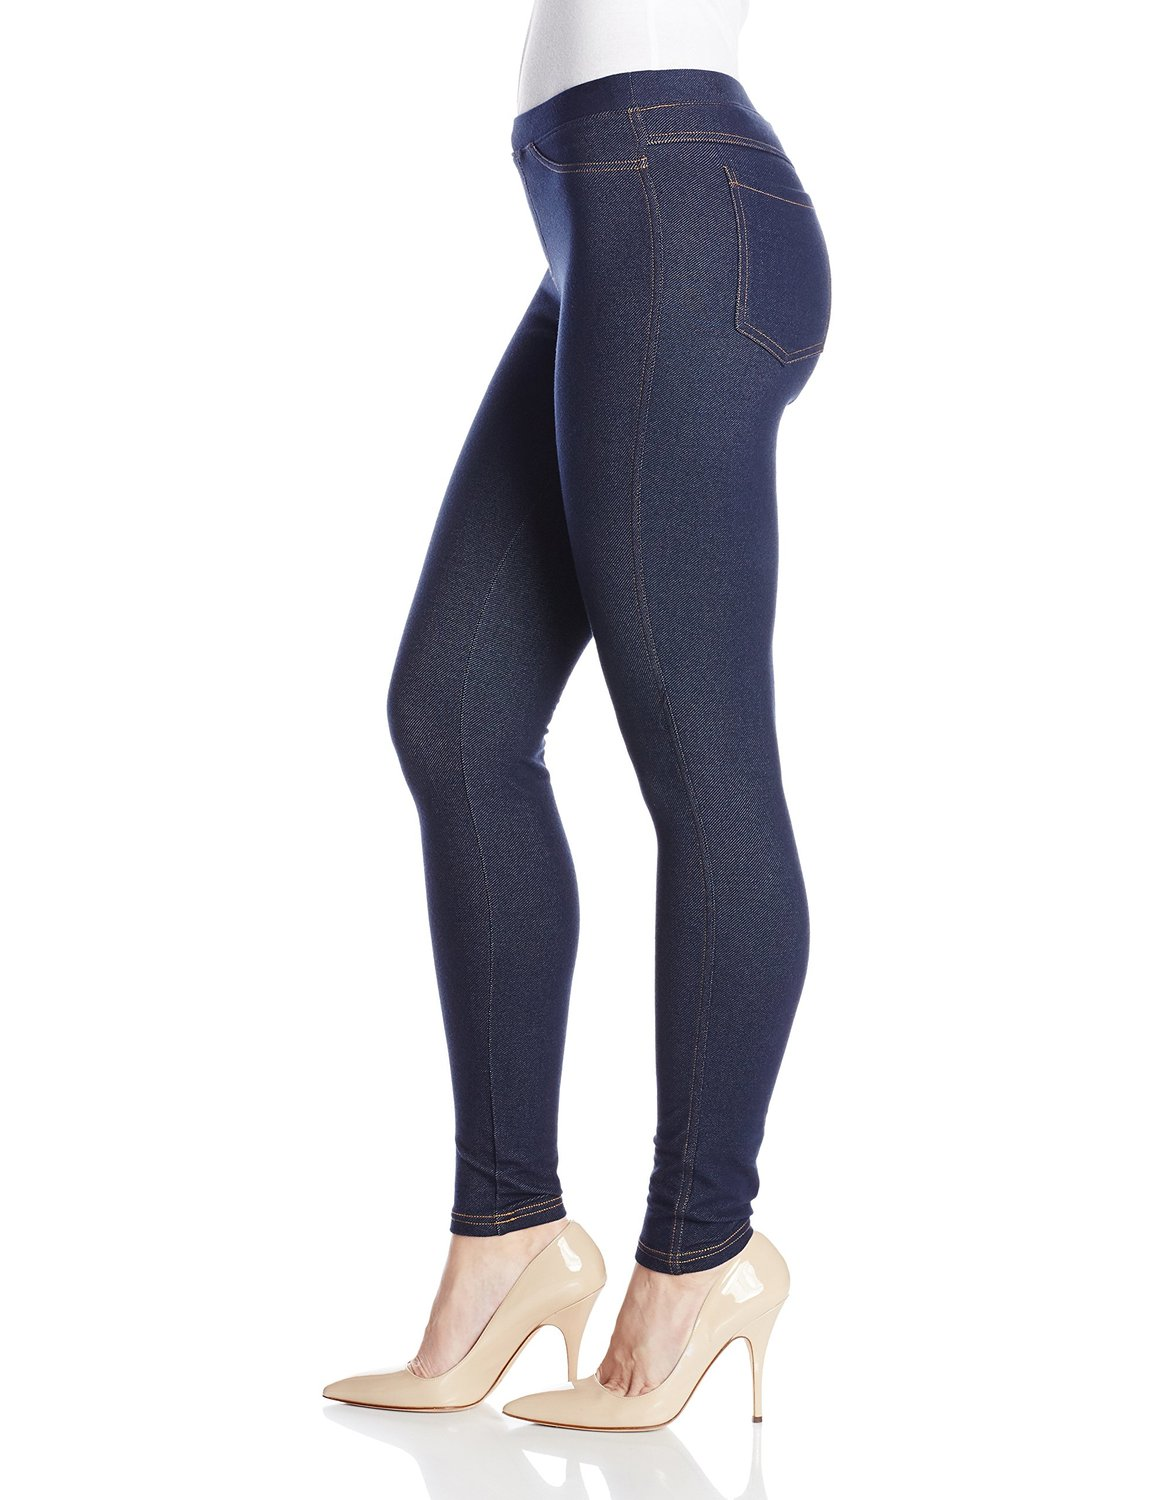 Womens Jeggings - Jean LeggingsFree Shipping $50+ · #expressjeans · Fit For You · Available in PetiteStyles: Leggings, Distresses, Crop, Dark Wash, High Rise.